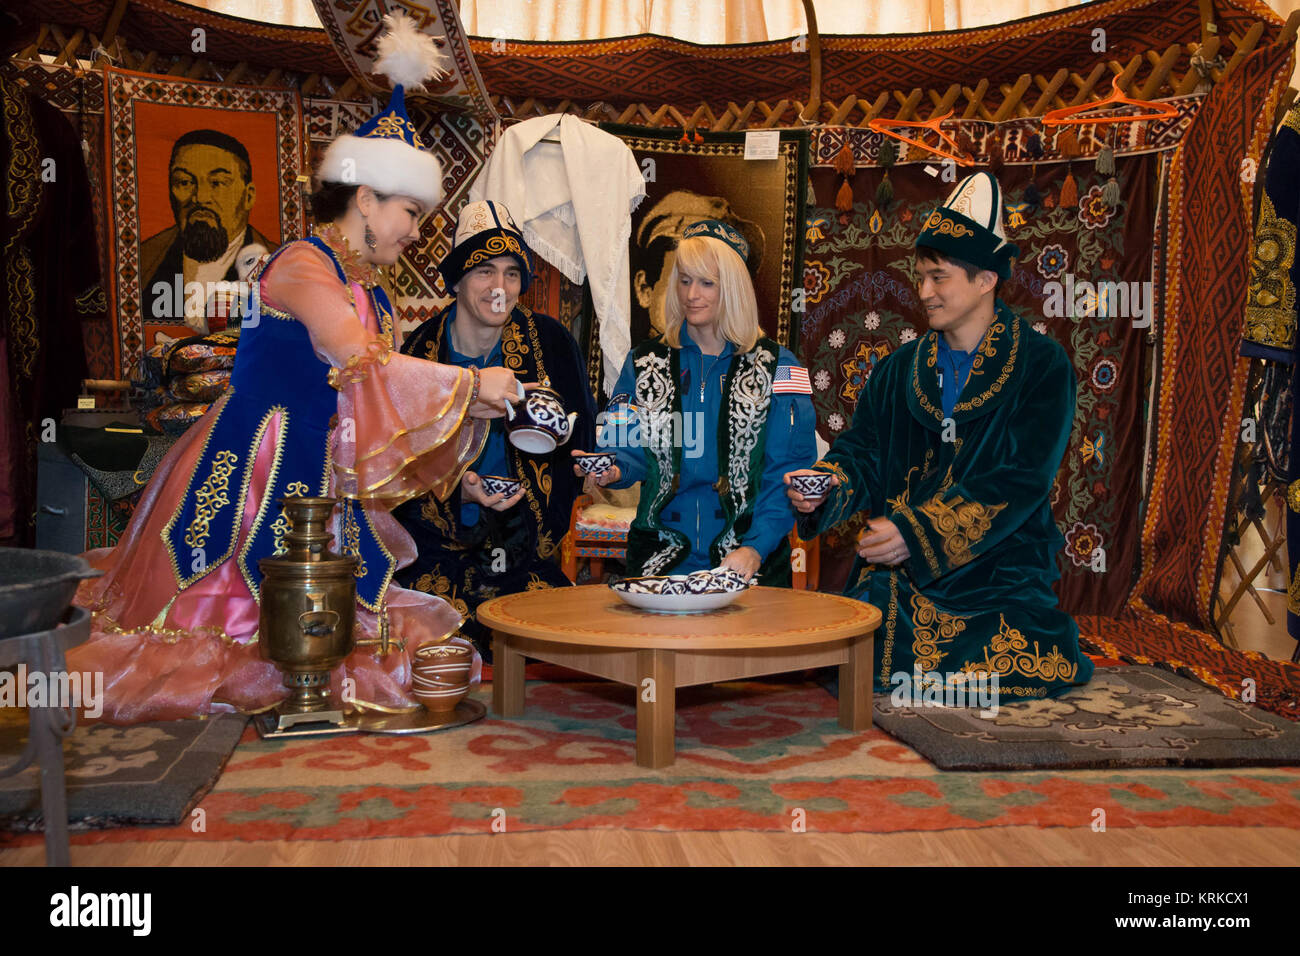 During a tour of the museum in Baikonur, Kazakhstan Dec. 2, the Expedition 46-47 backup crewmembers were treated - Stock Image